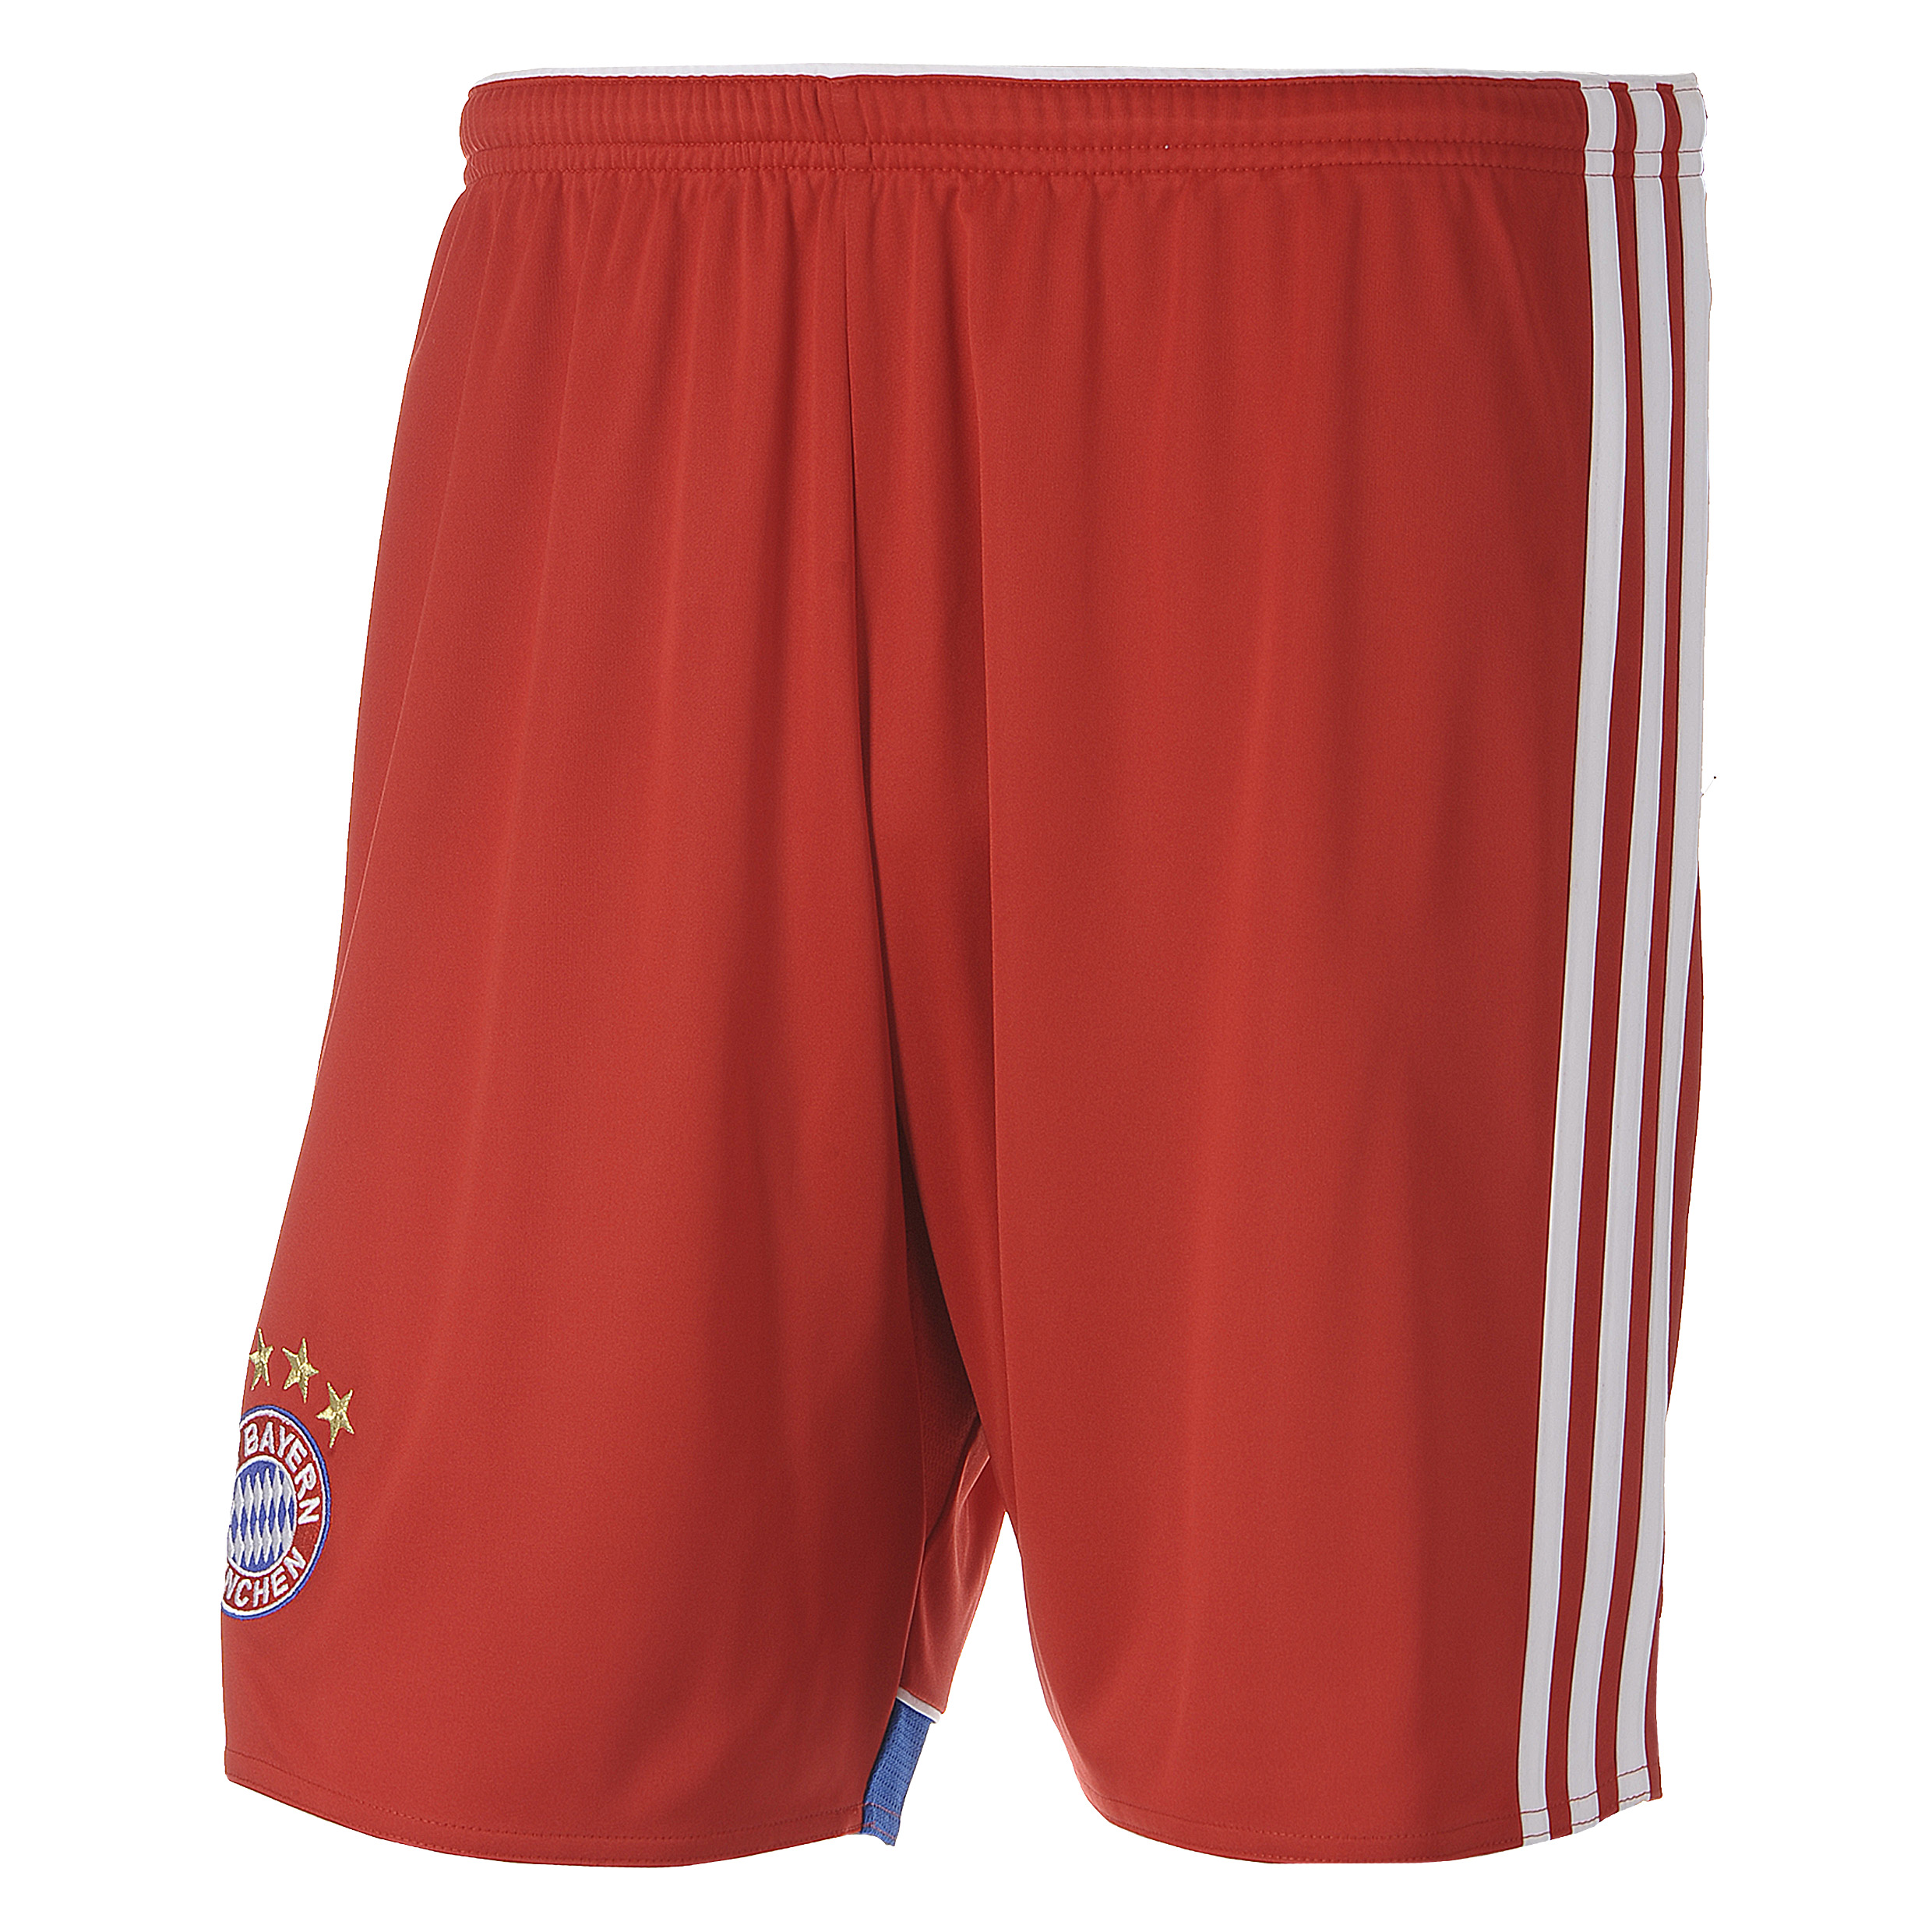 Bayern Munich Home Short 2014/15